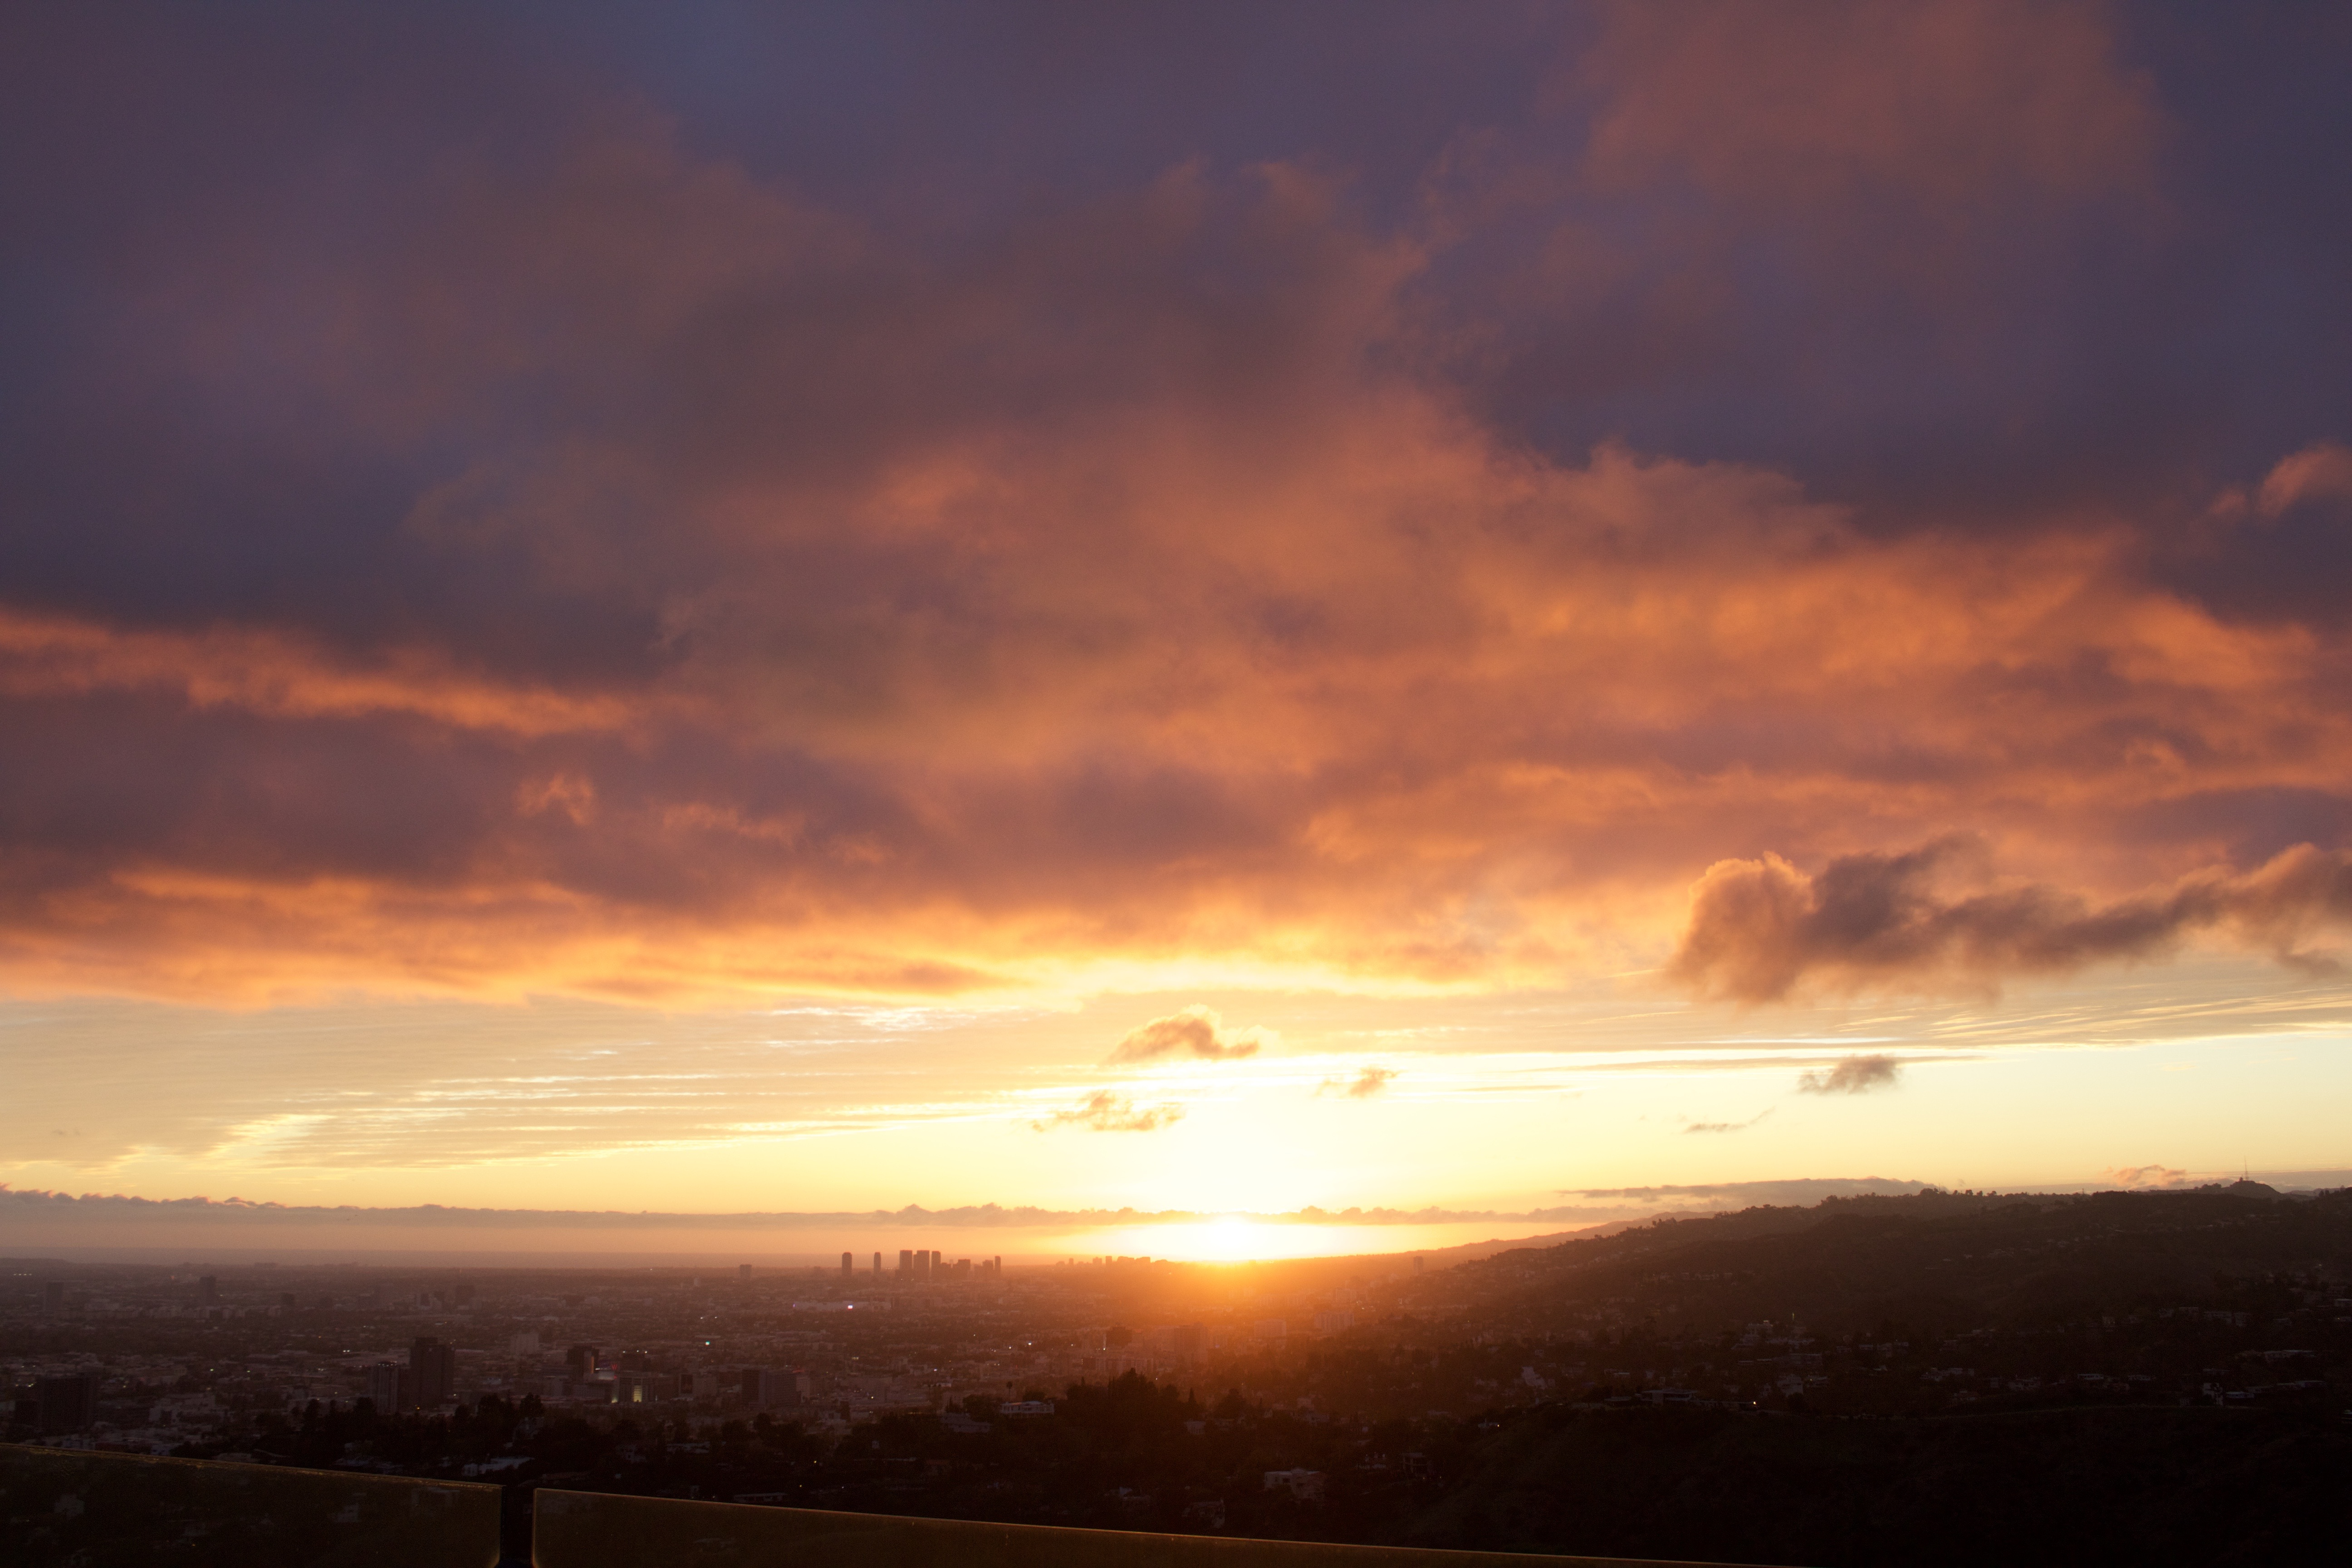 sunset at the Griffith Observatory